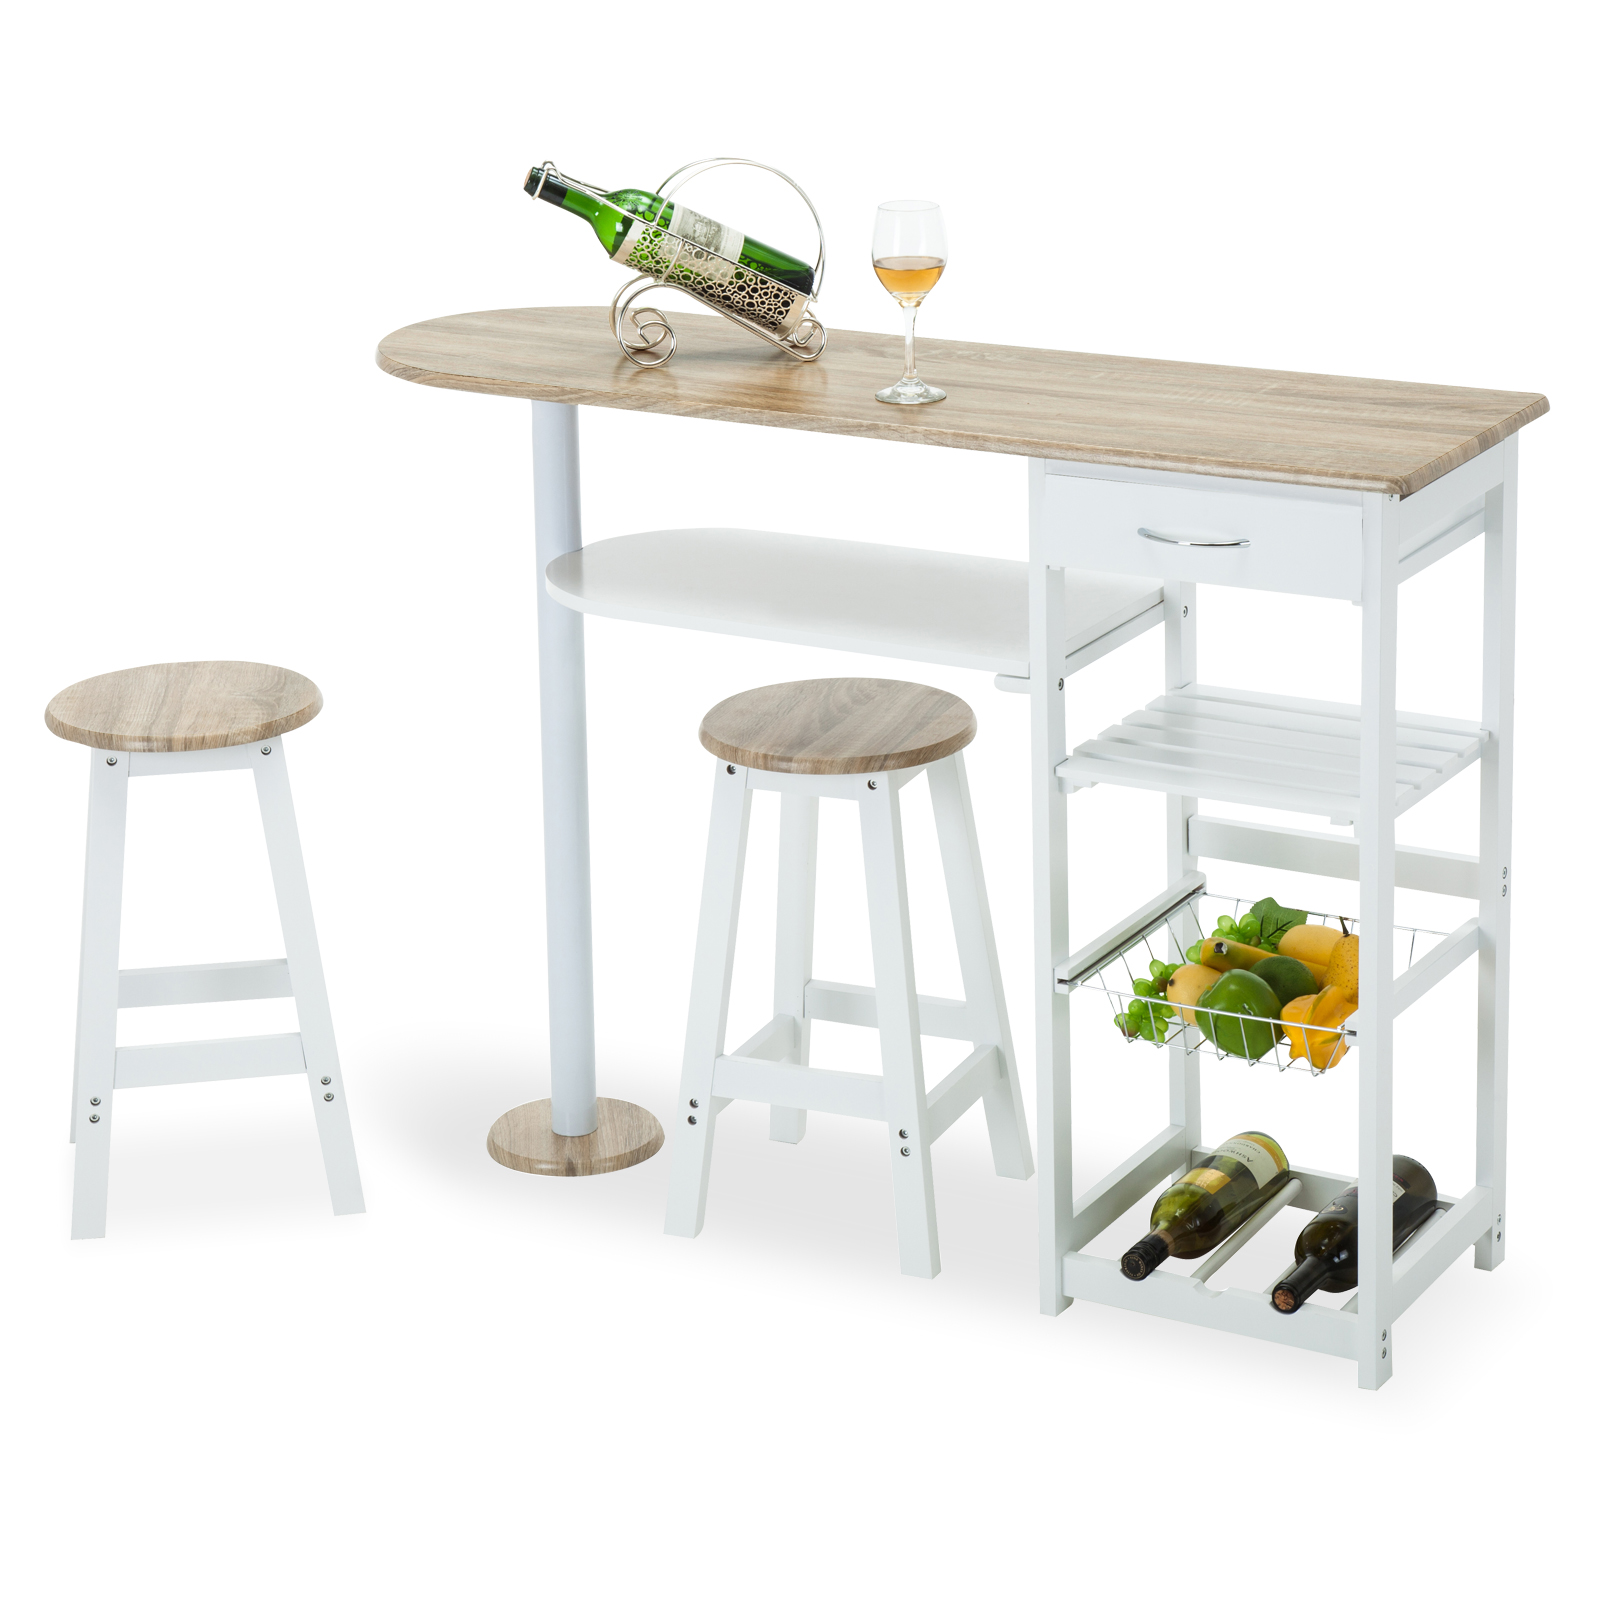 Oak White Kitchen Island Cart Trolley Dining Table Storage 2 Bar Stools